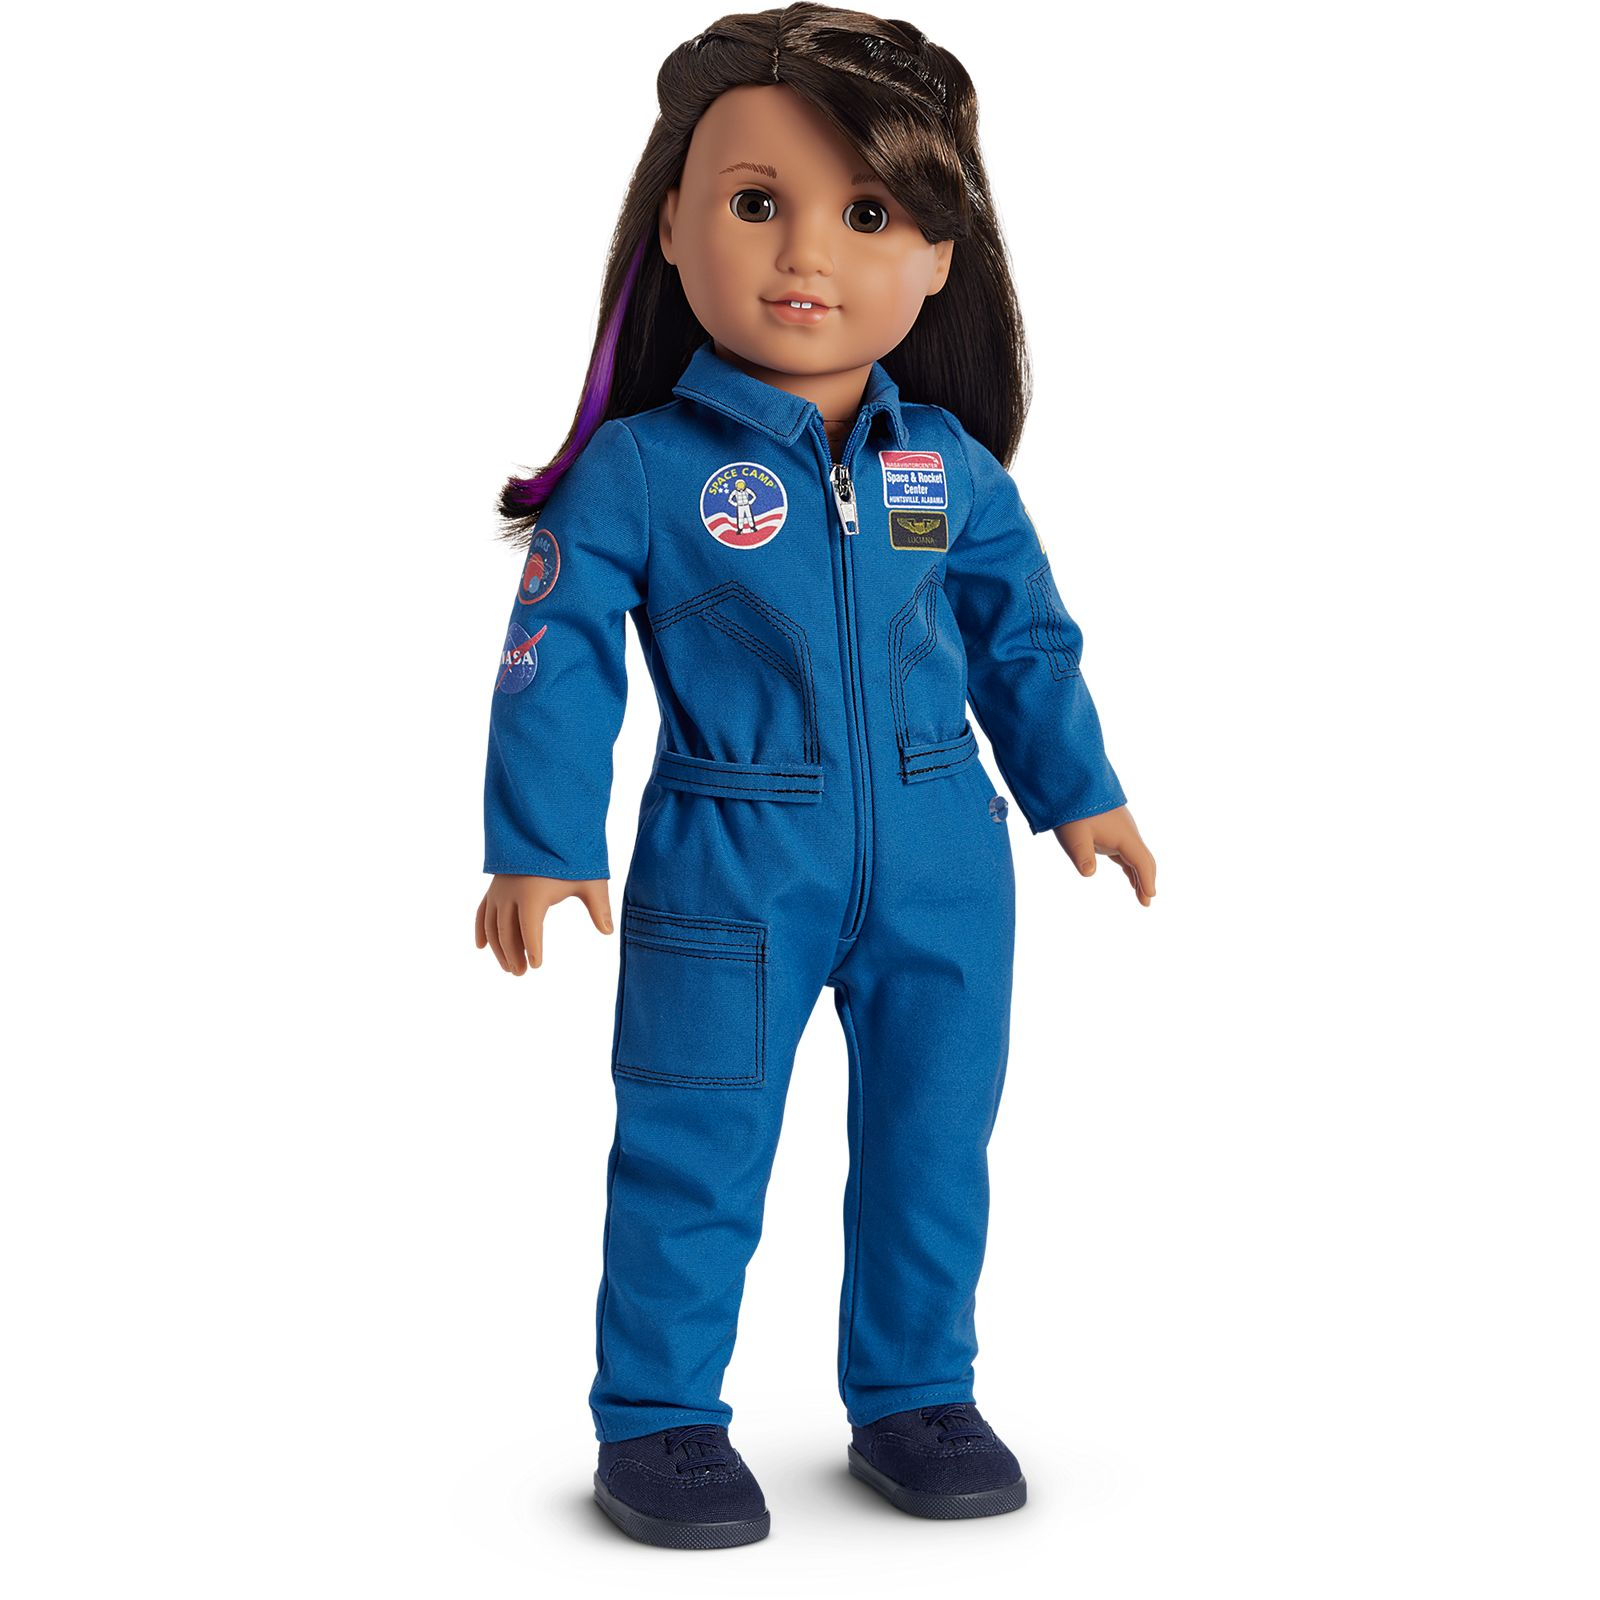 American Girl Luciana's Flight Suit for 18-inch Dolls